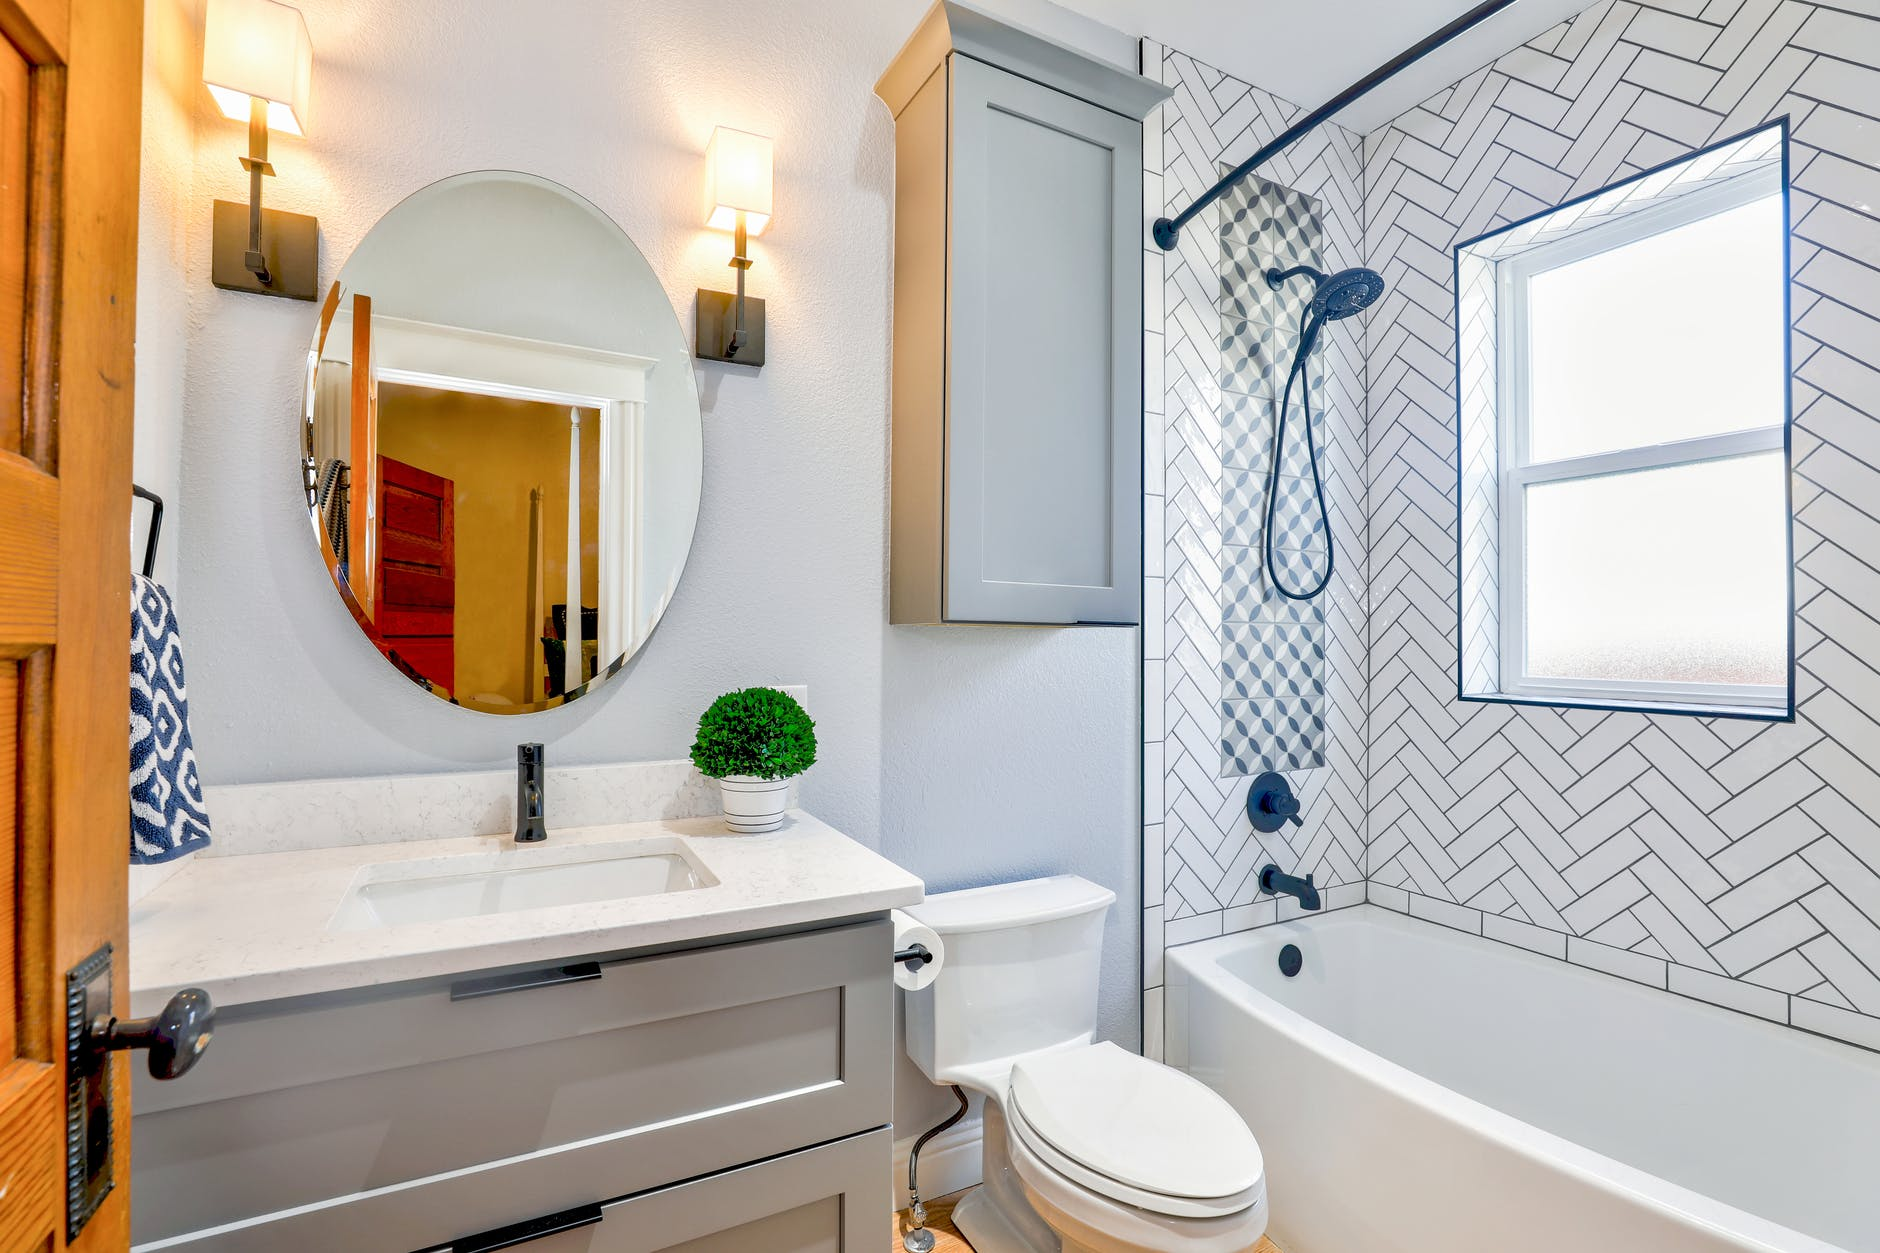 6 common mistakes to avoid in bathroom remodeling projects image. Image